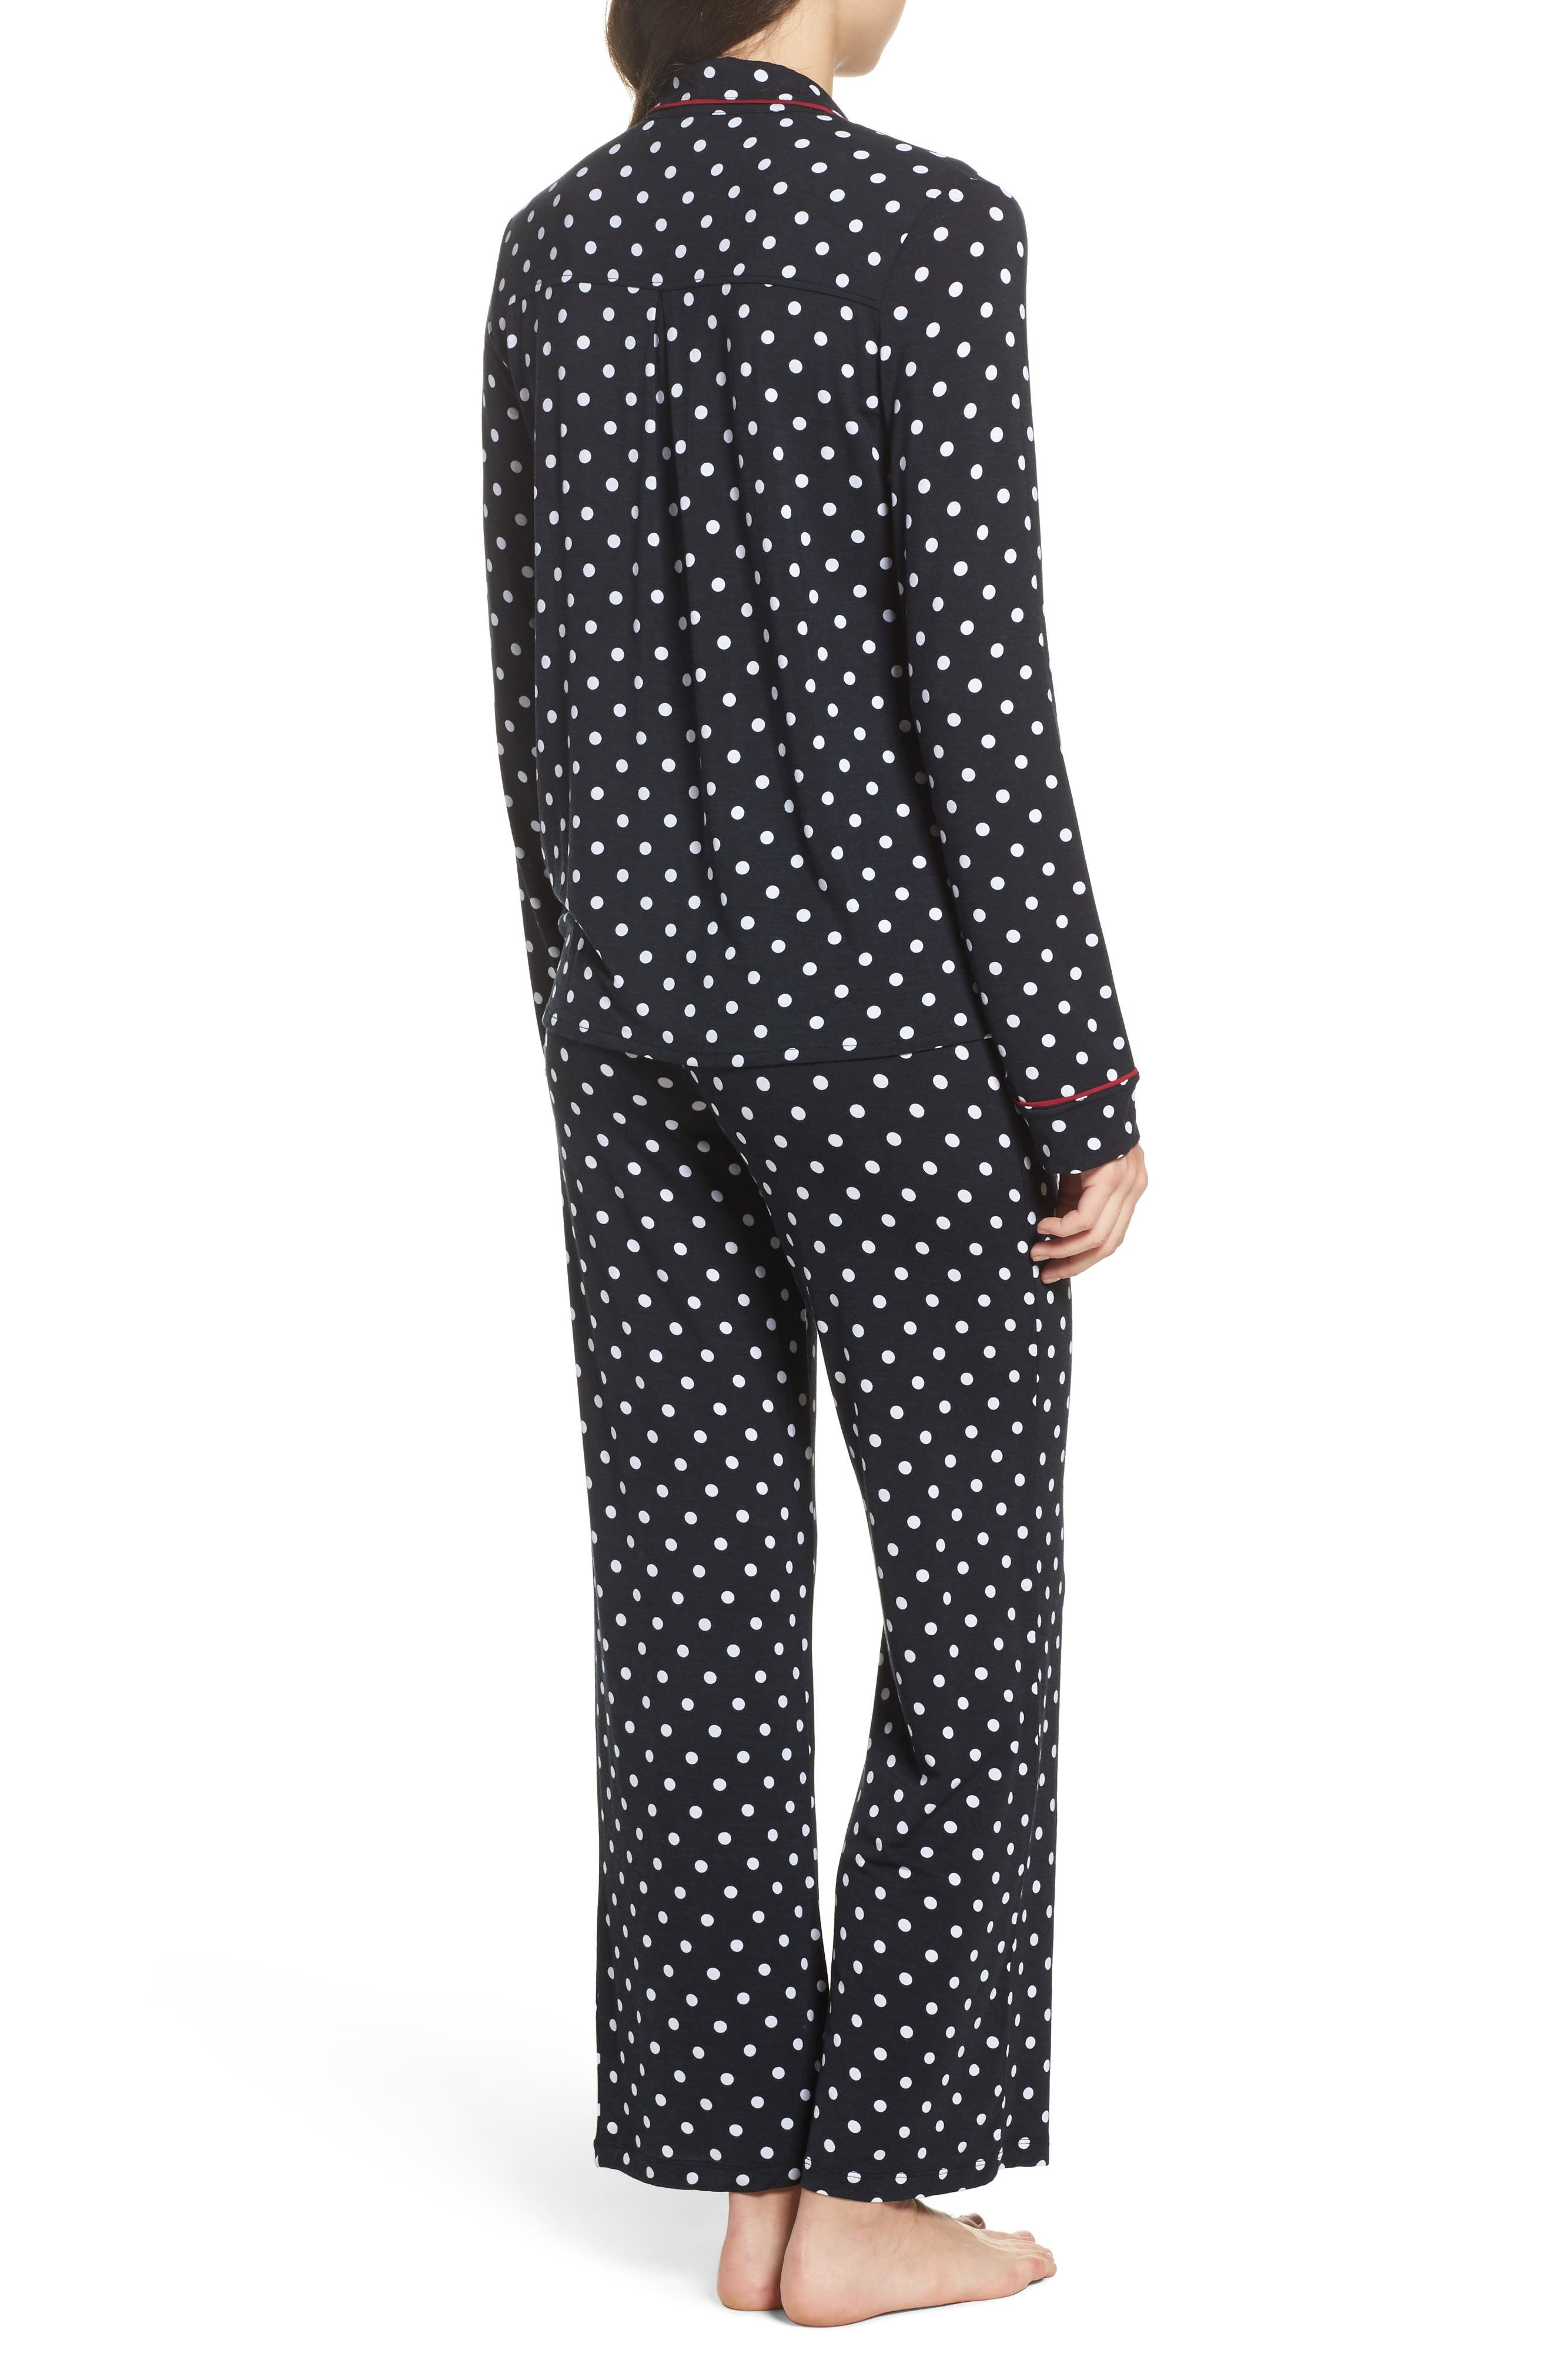 Stretch Modal Pajamas & Eye Mask,                             Alternate thumbnail 2, color,                             Black